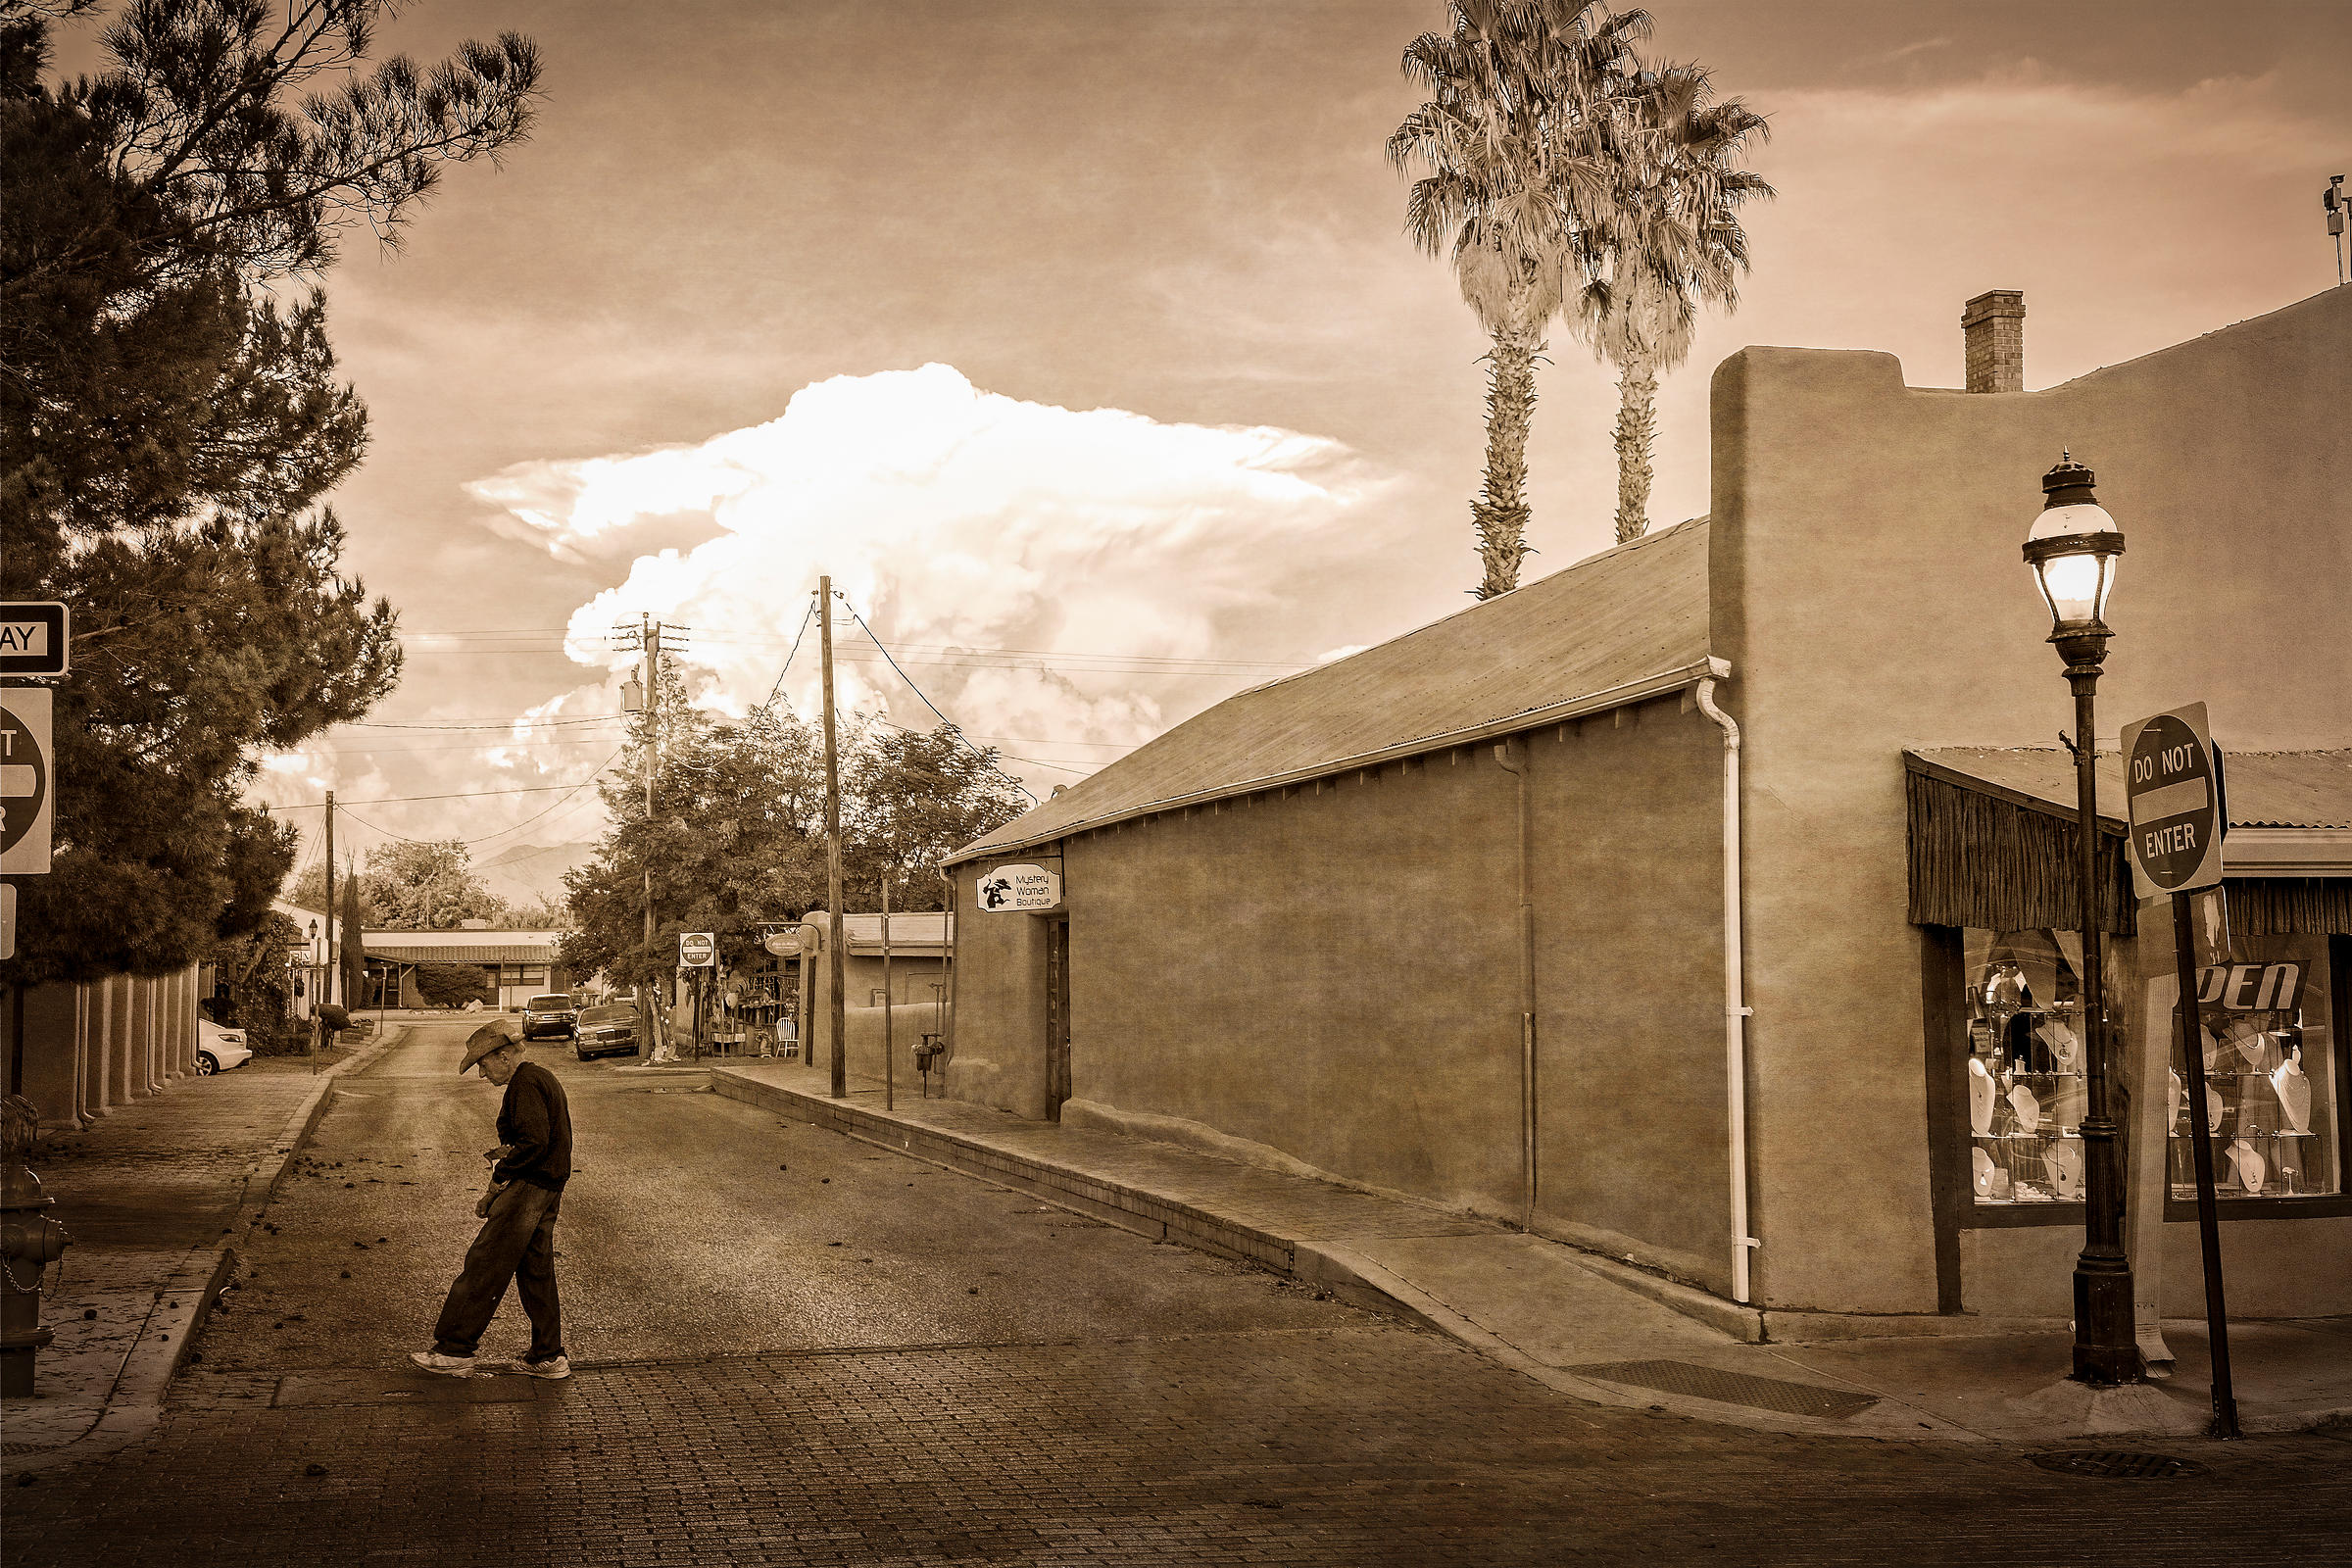 Man Crossing Street in Old Mesilla